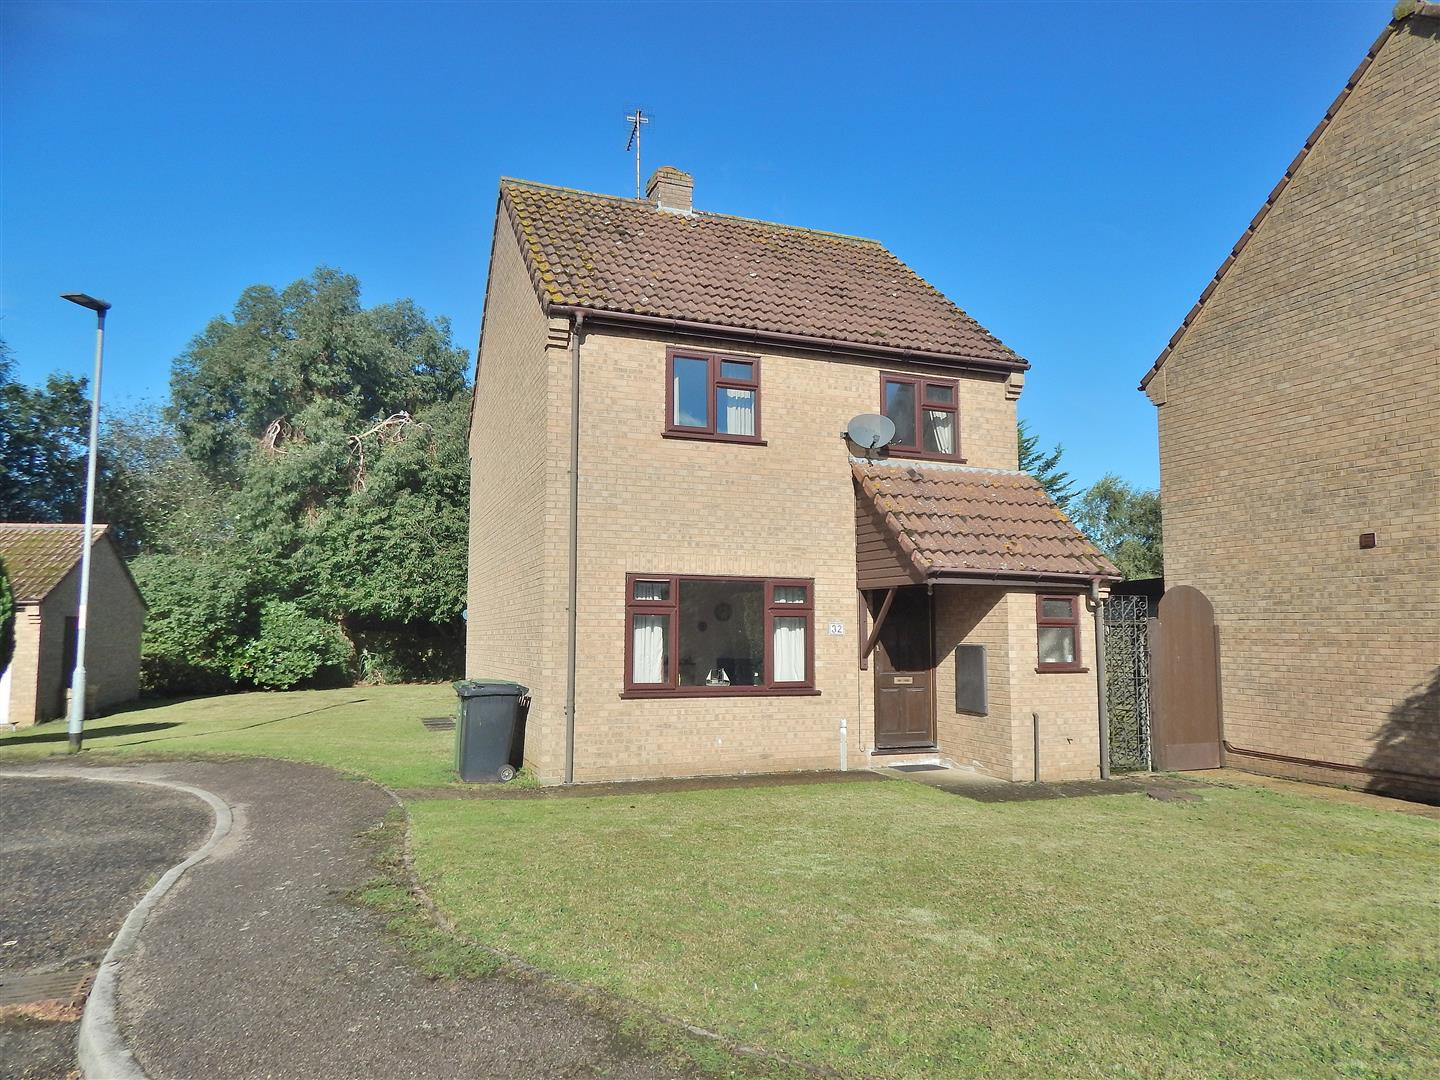 3 bed detached house for sale in Viceroy Close, King's Lynn  - Property Image 1